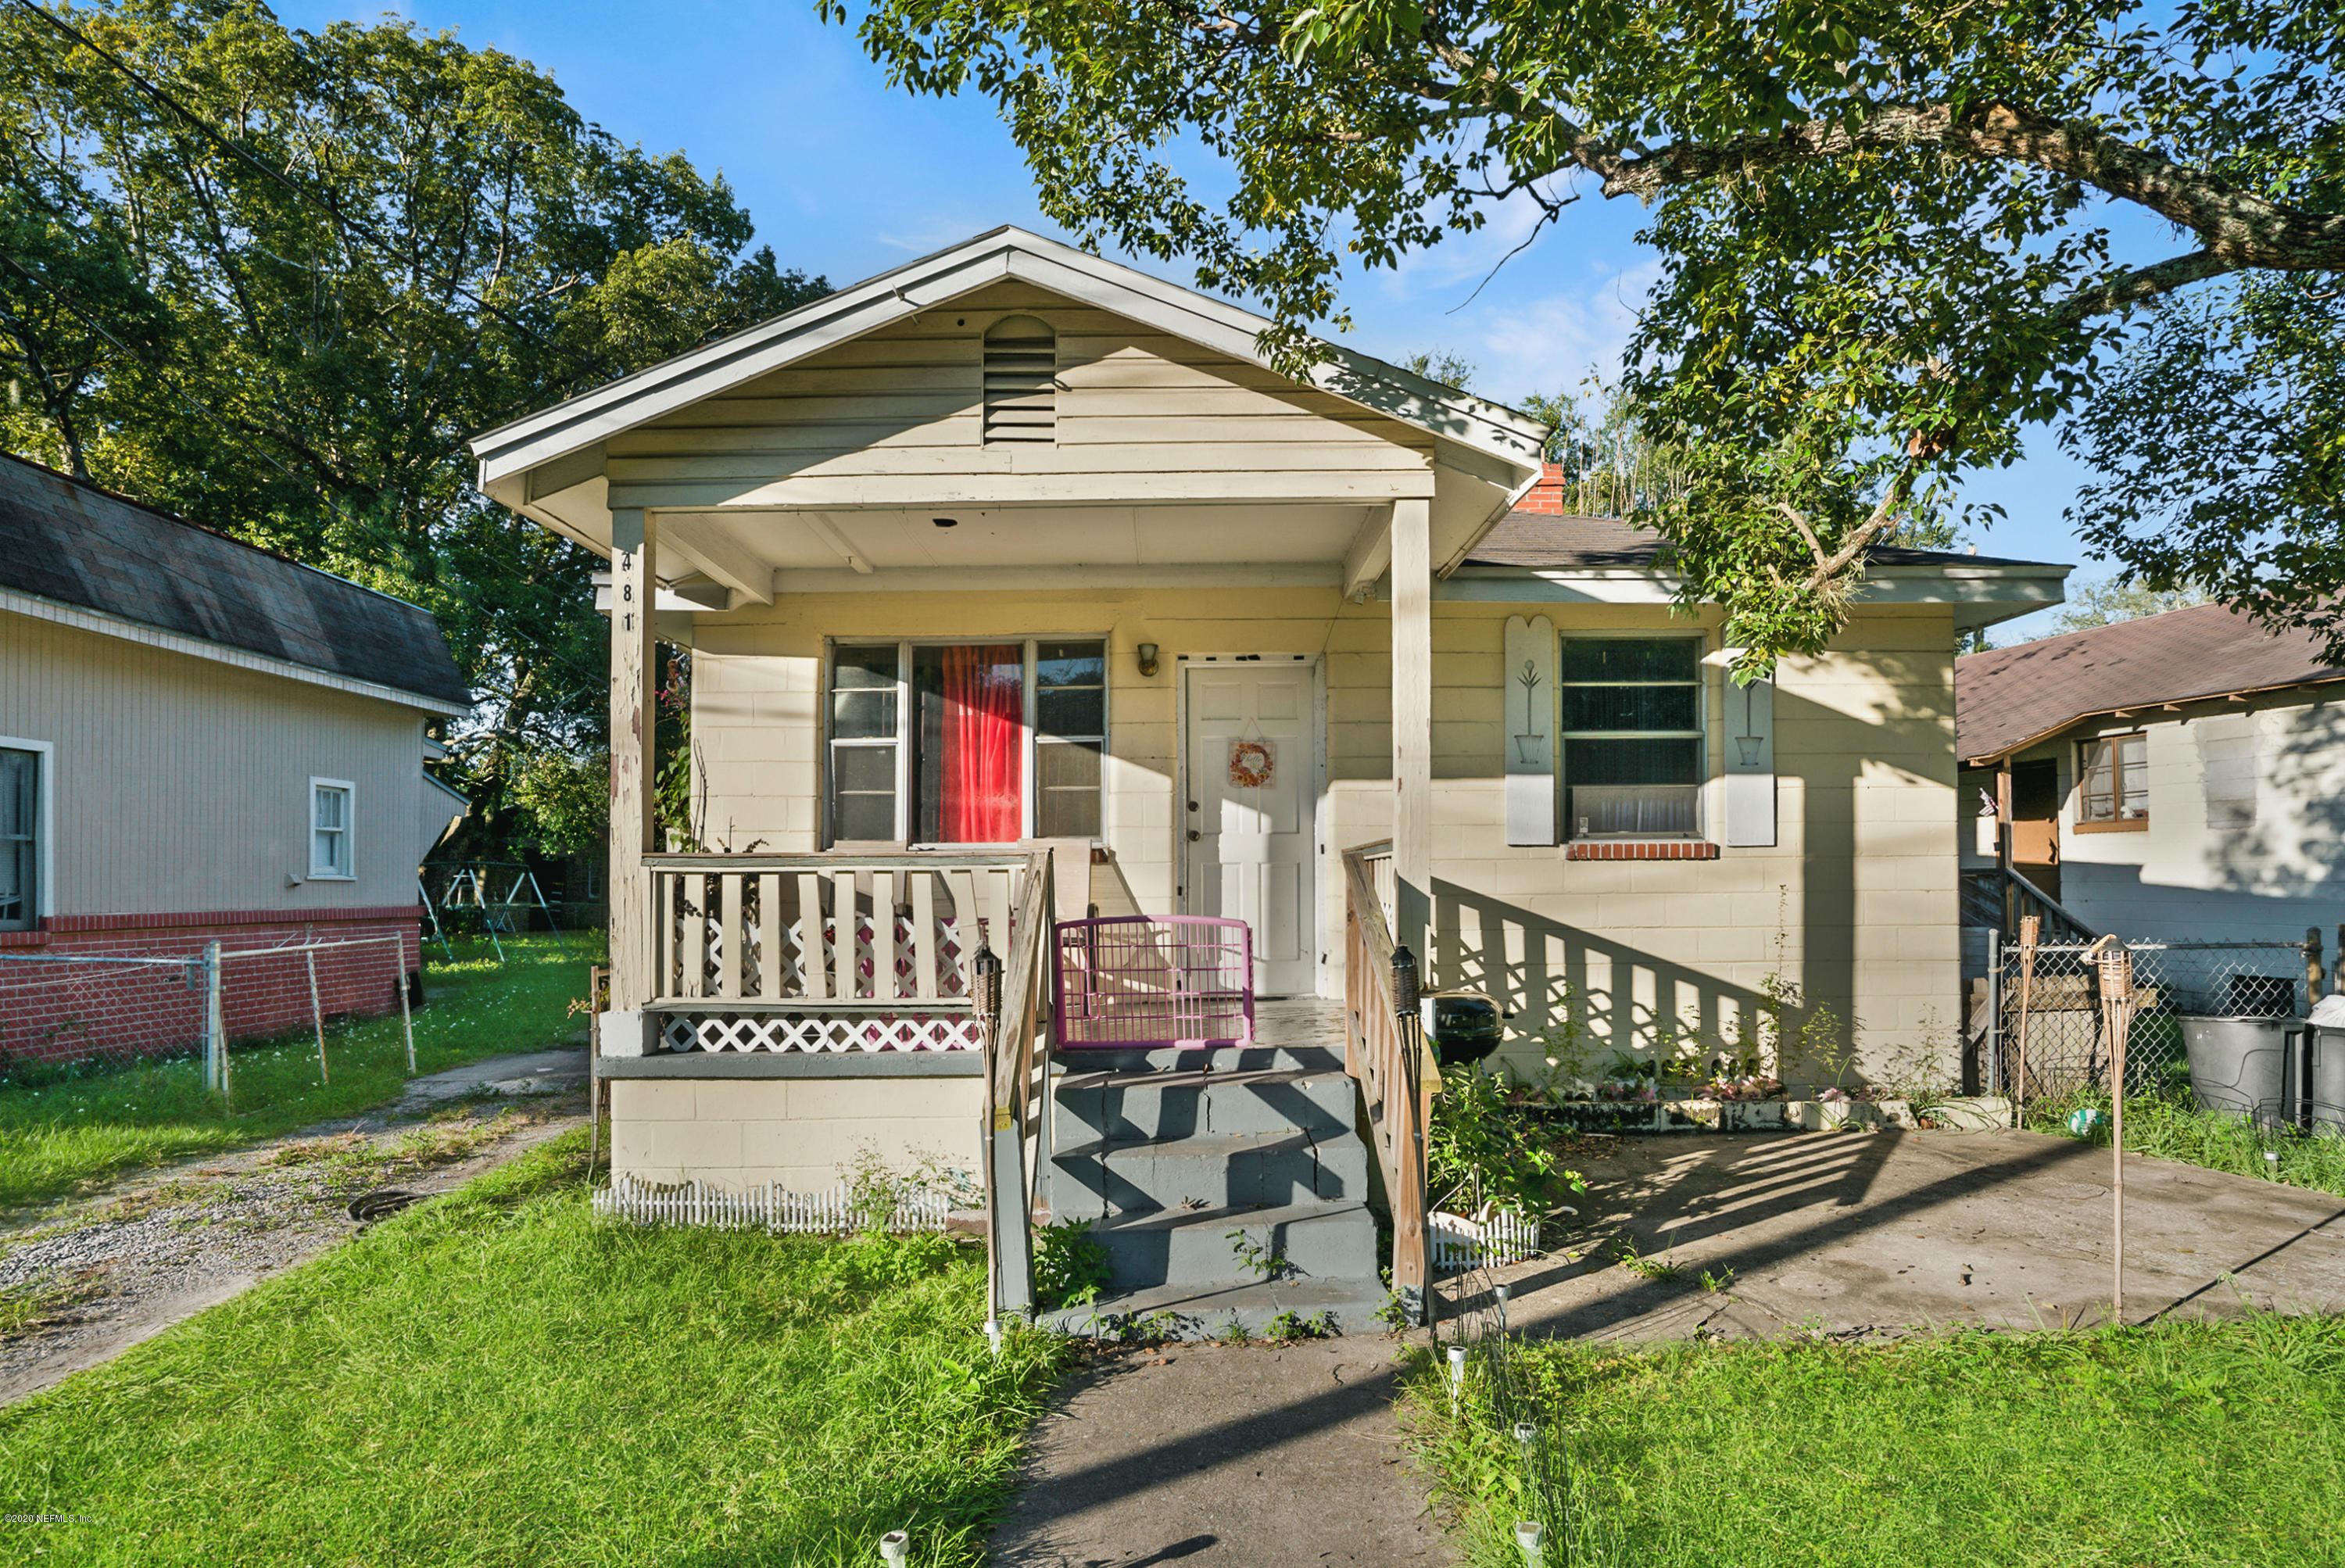 481 44TH, JACKSONVILLE, FLORIDA 32208, 9 Bedrooms Bedrooms, ,5 BathroomsBathrooms,Investment / MultiFamily,For sale,44TH,1085320